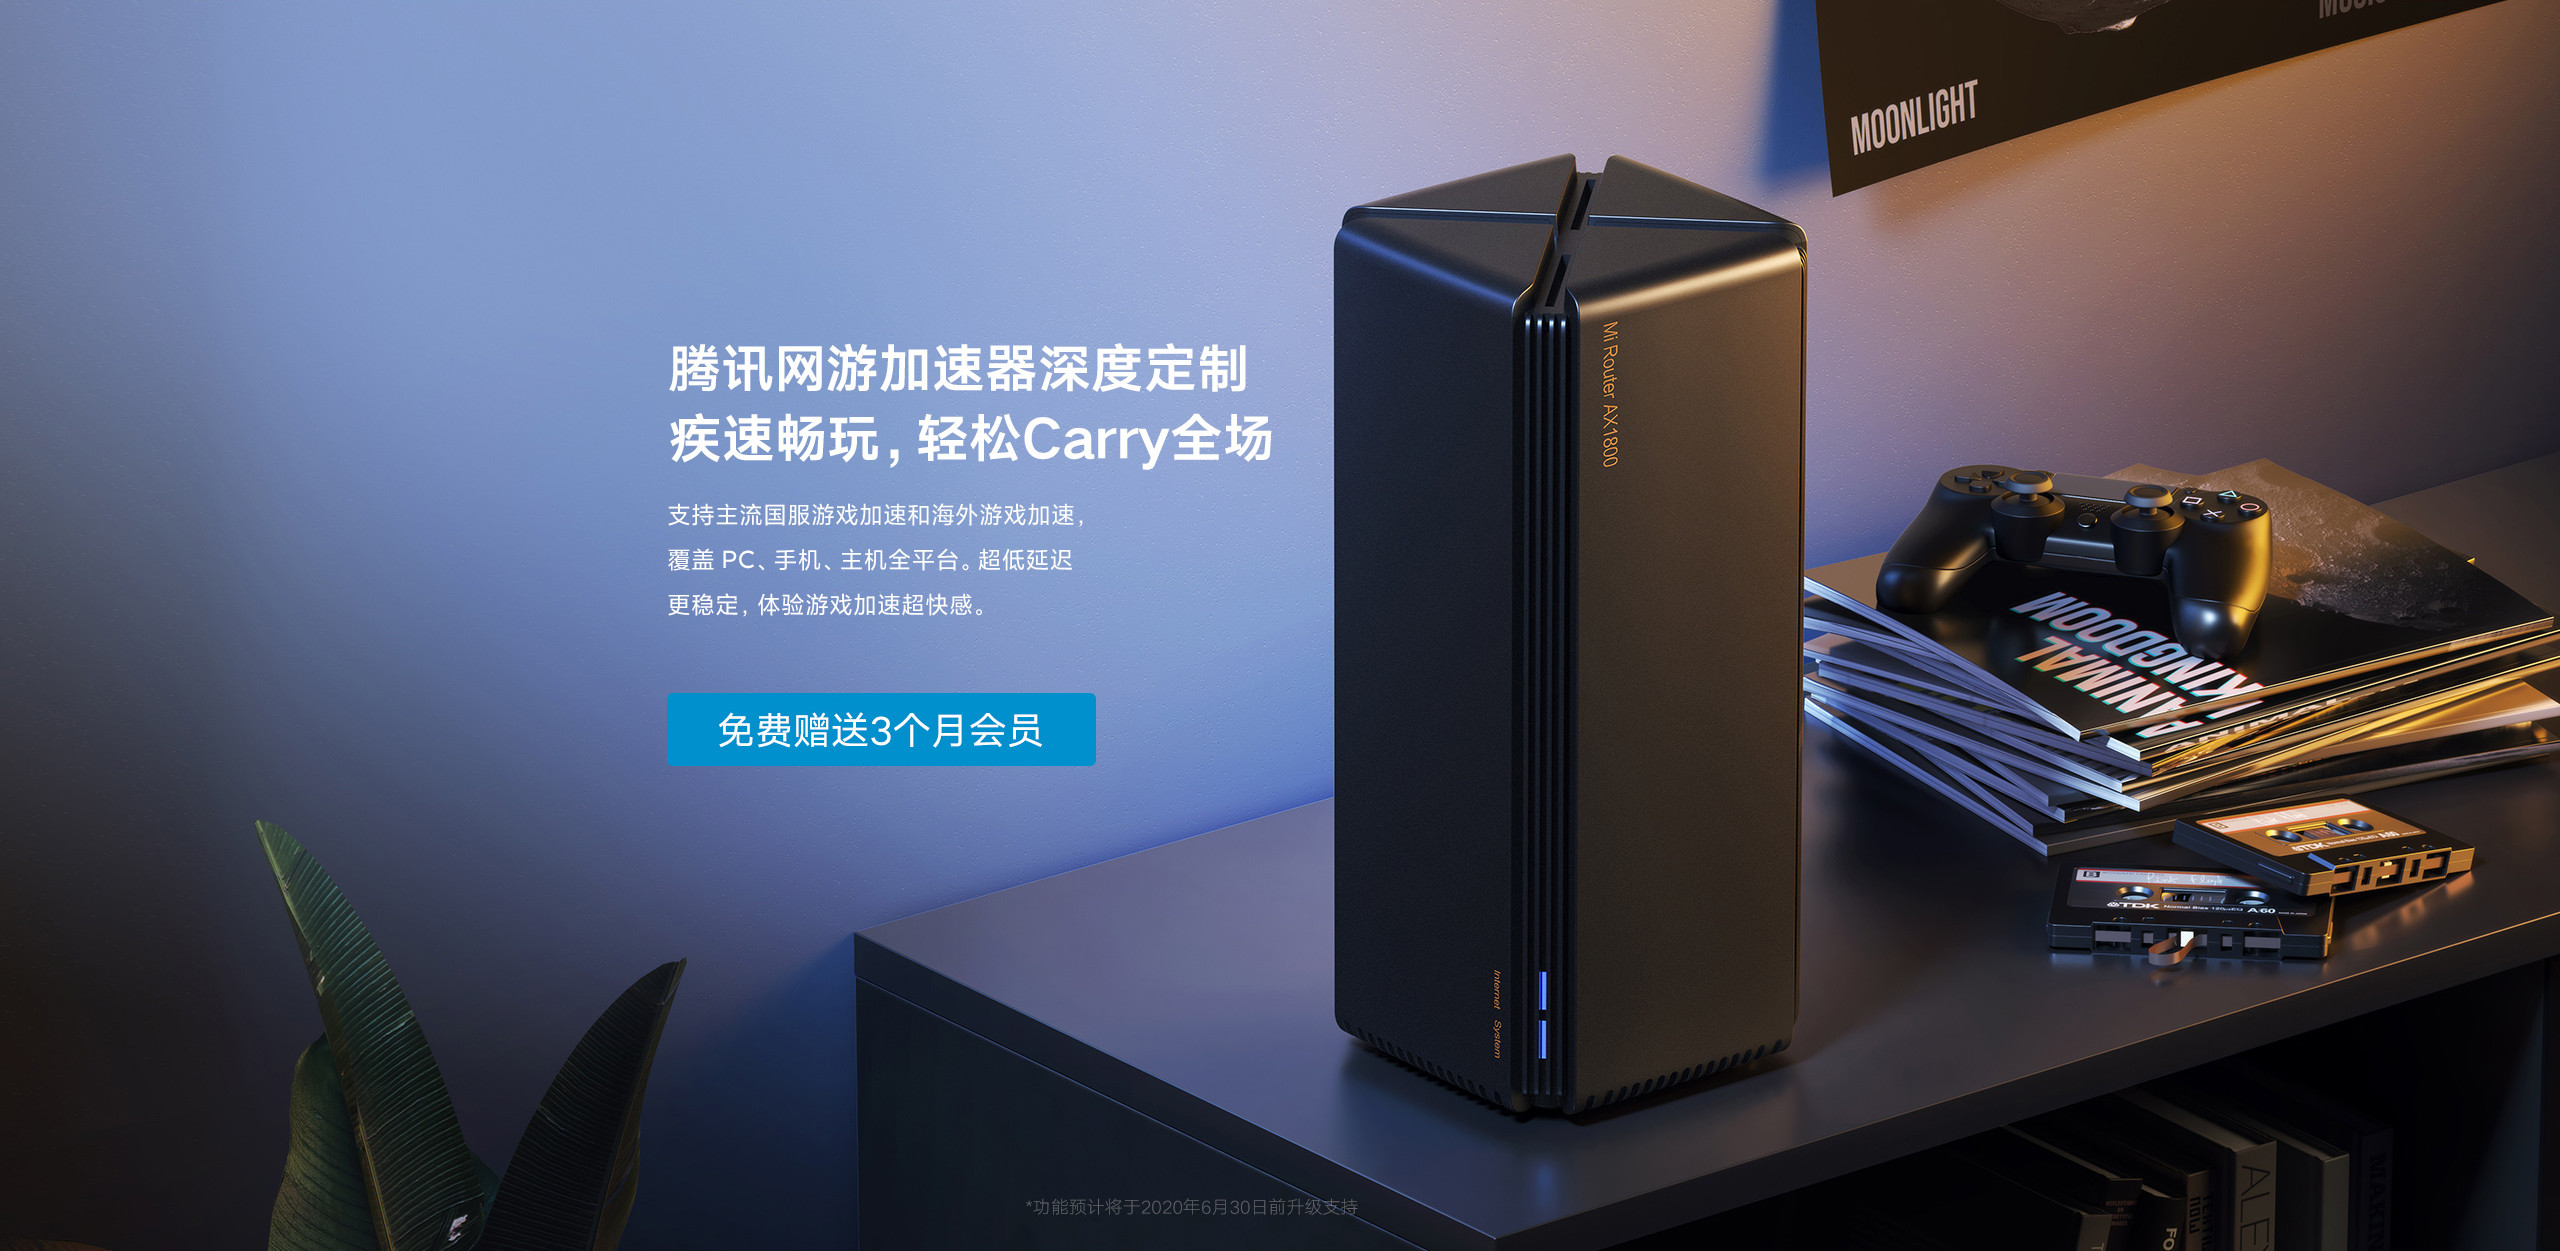 Xiaomi Router AX1800 - 2.4GHz/5GHz 1800Mbps Wi-Fiルーター 2